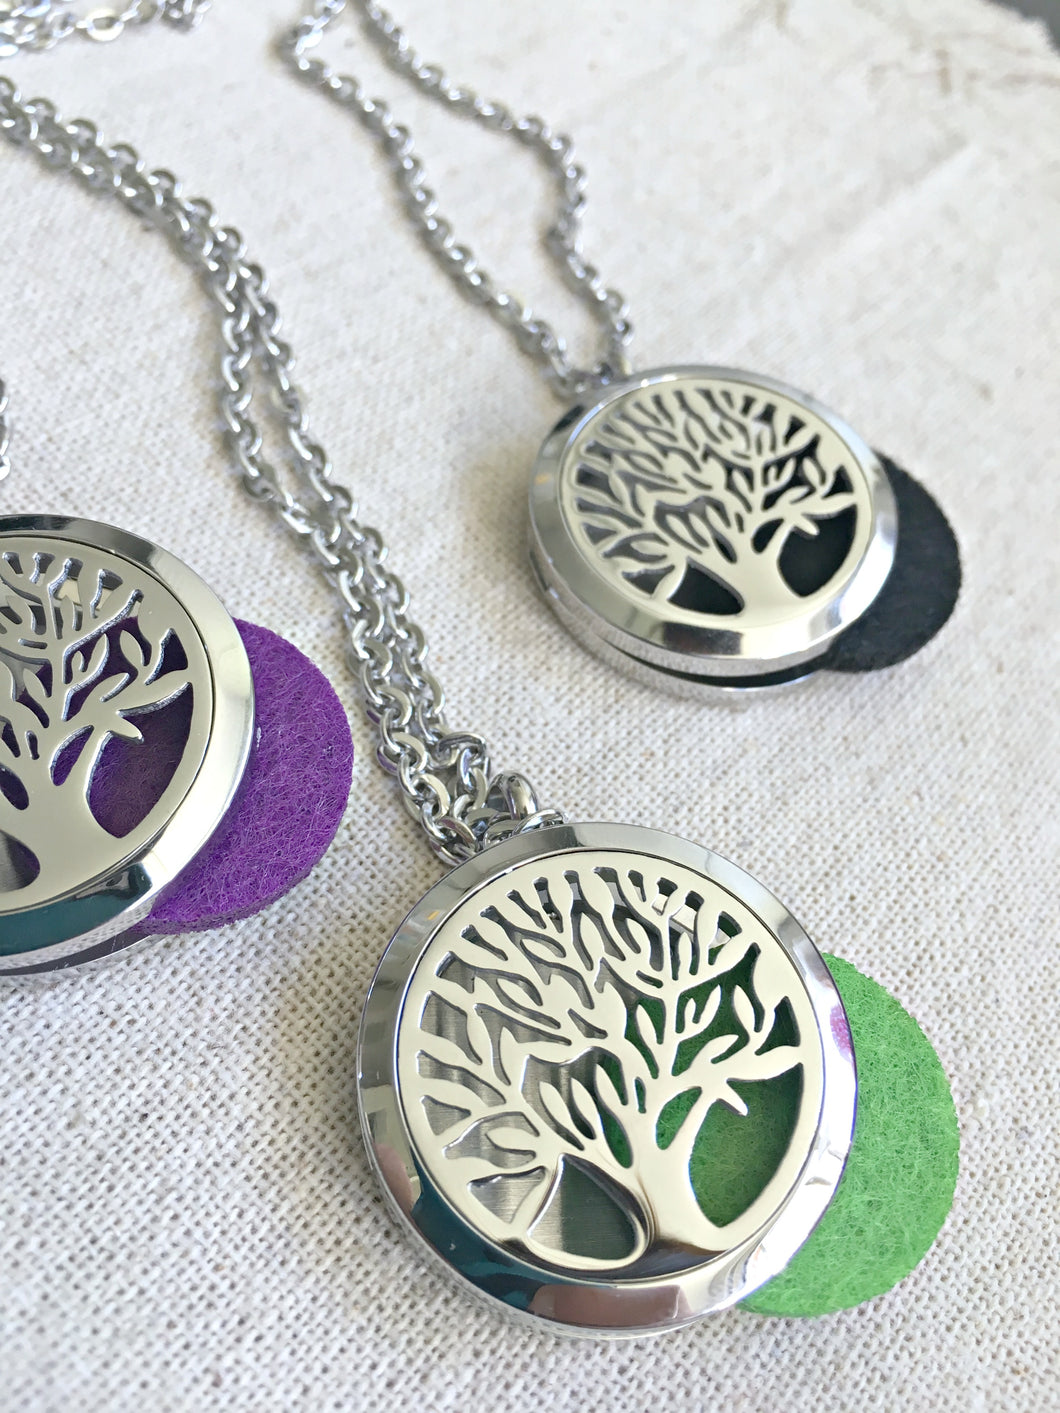 Silver Tree of Life Necklace, Aromatherapy Necklace, Stainless Steel Essential Oil Necklace, Essential Oil Diffuser Necklace, Meditation Gifts, Diffuser